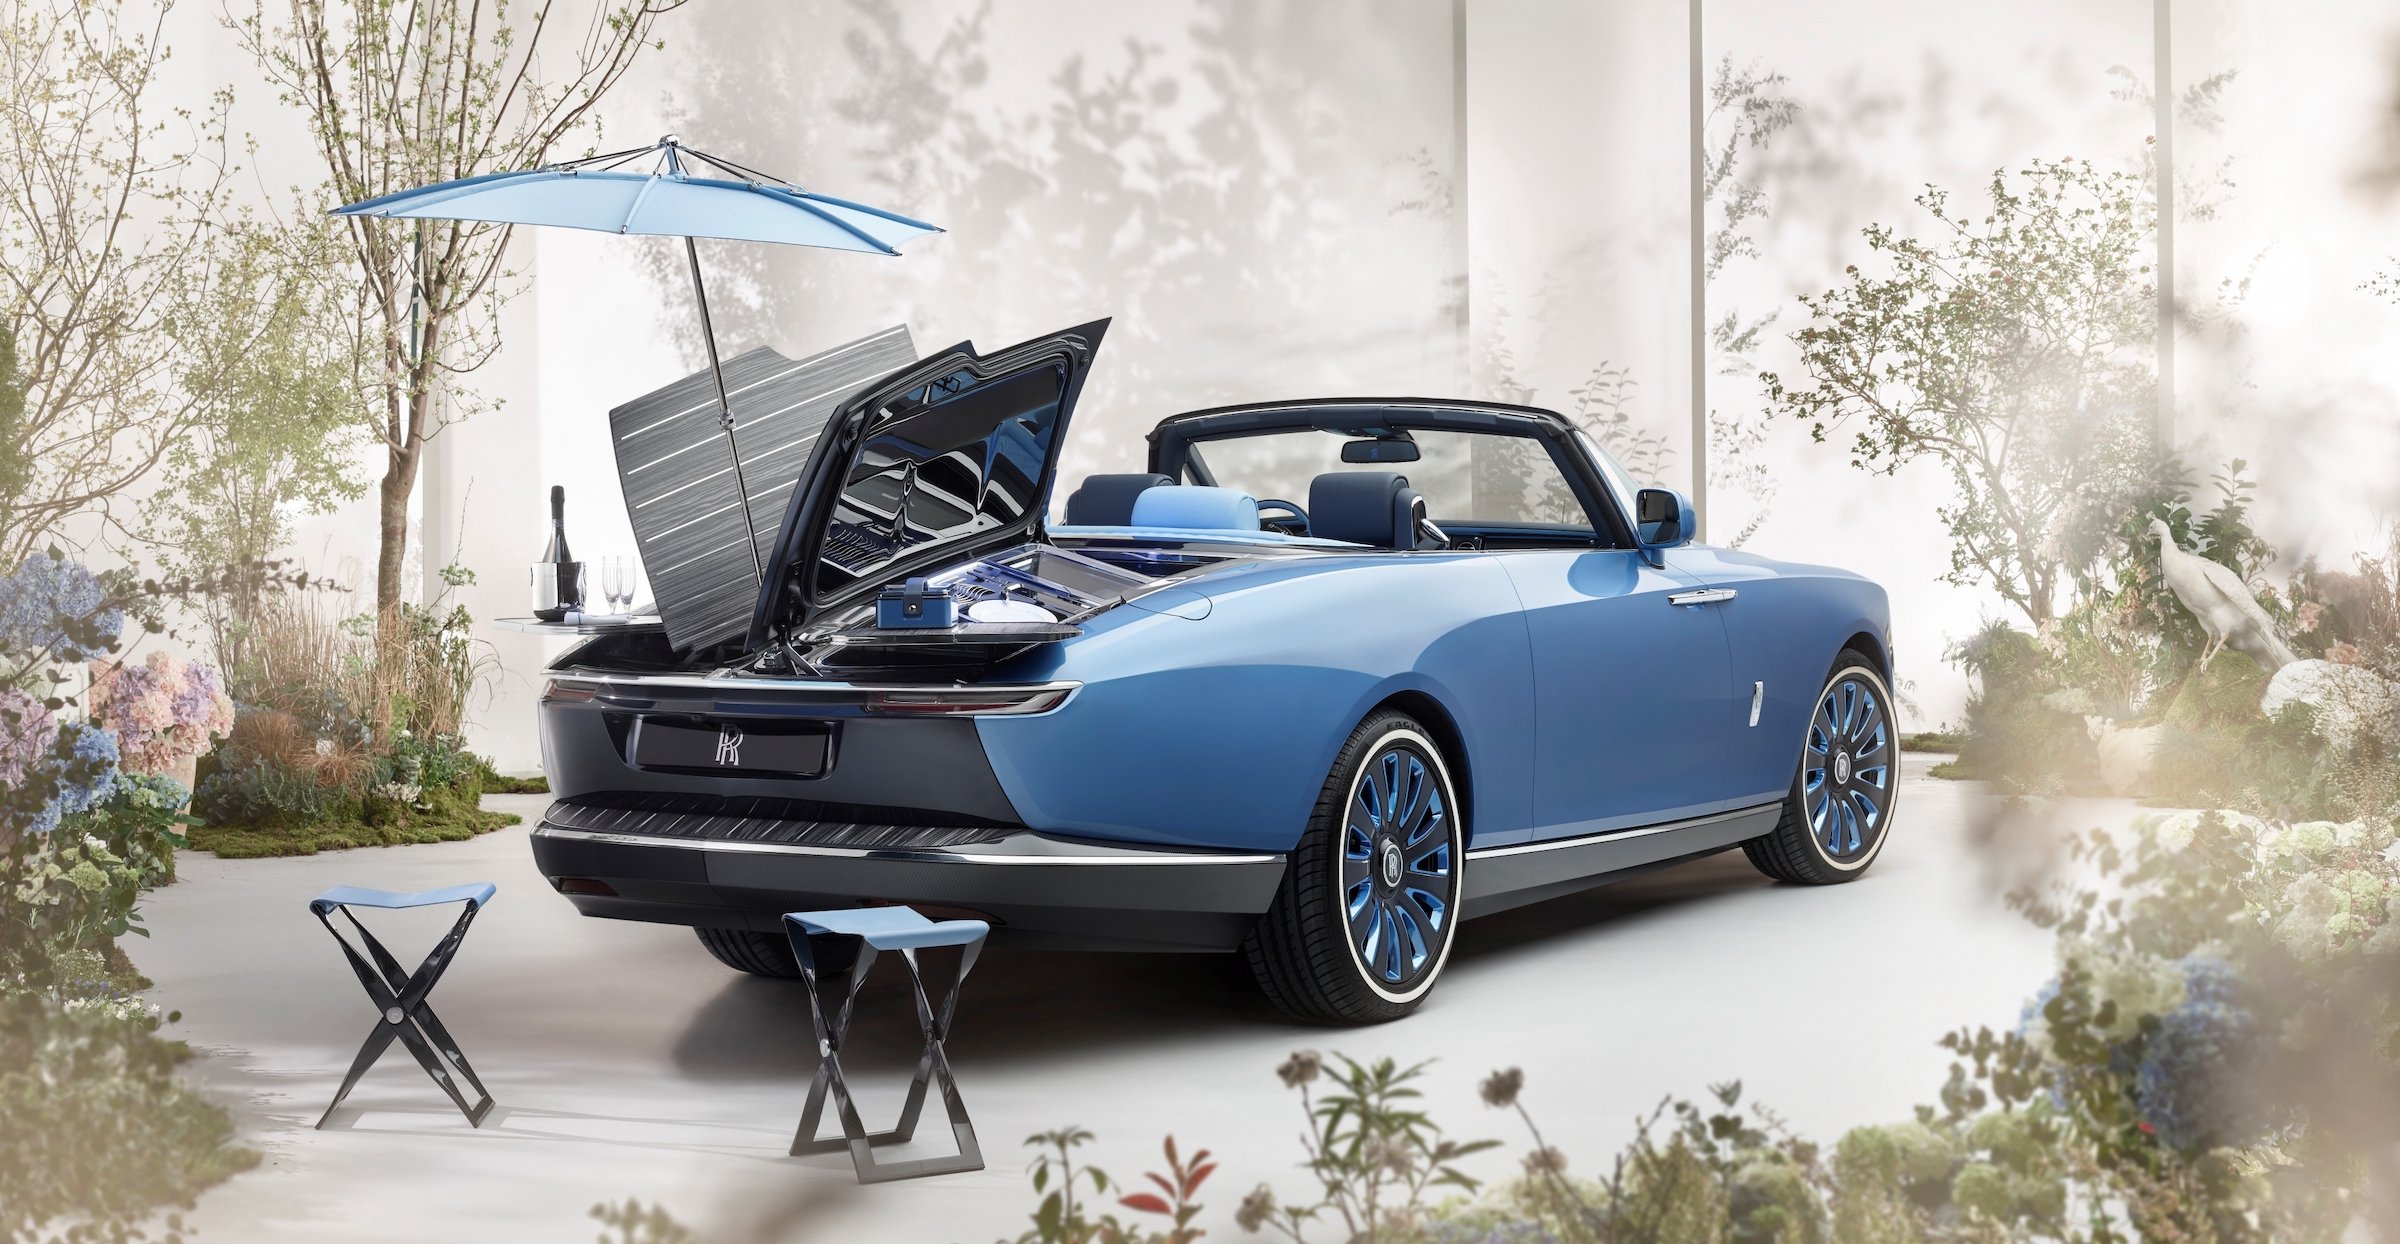 This £20m custom Rolls-Royce is perfect for a billionaire's picnic – with Beyoncé and Jay-Z